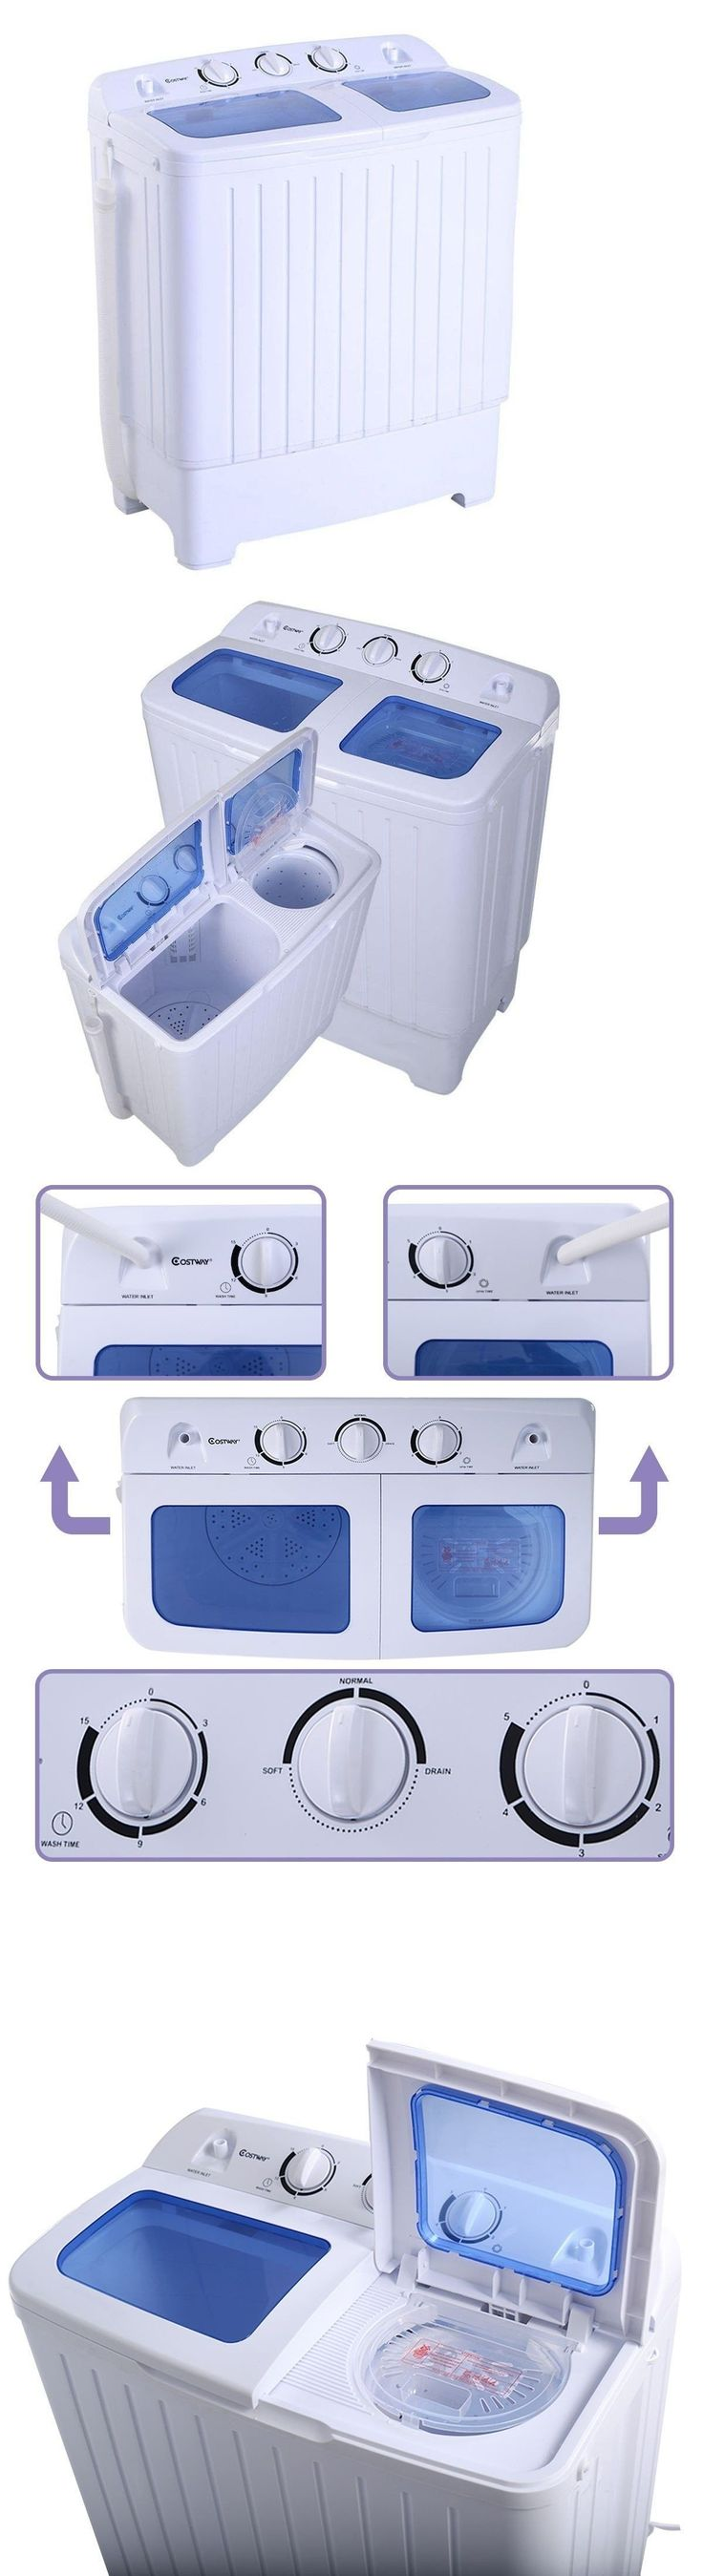 Washer and Dryer Sets 71257: Apartment Washer And Dryer Combo All In One Portable Compact Washing Machine Set -> BUY IT NOW ONLY: $137.79 on eBay!